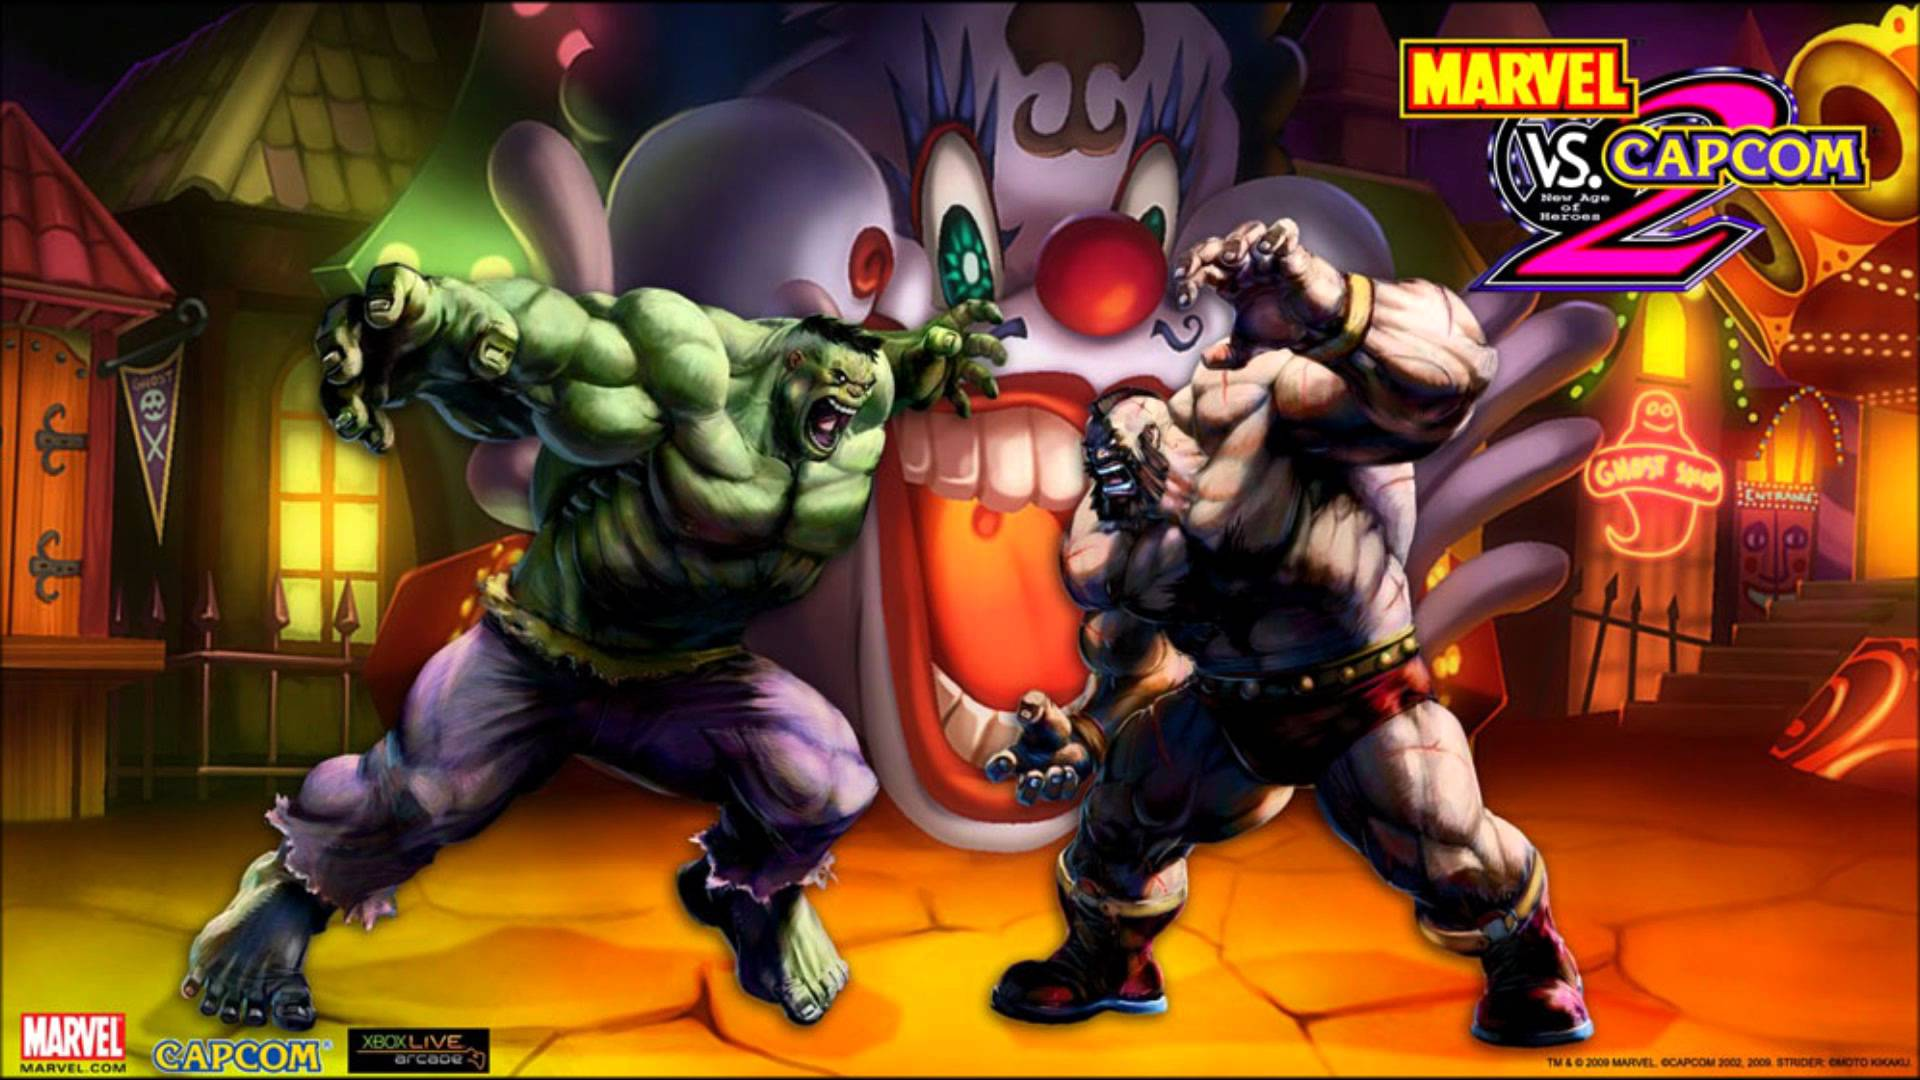 Most Viewed Marvel Vs Capcom 2 Wallpapers 4k Wallpapers